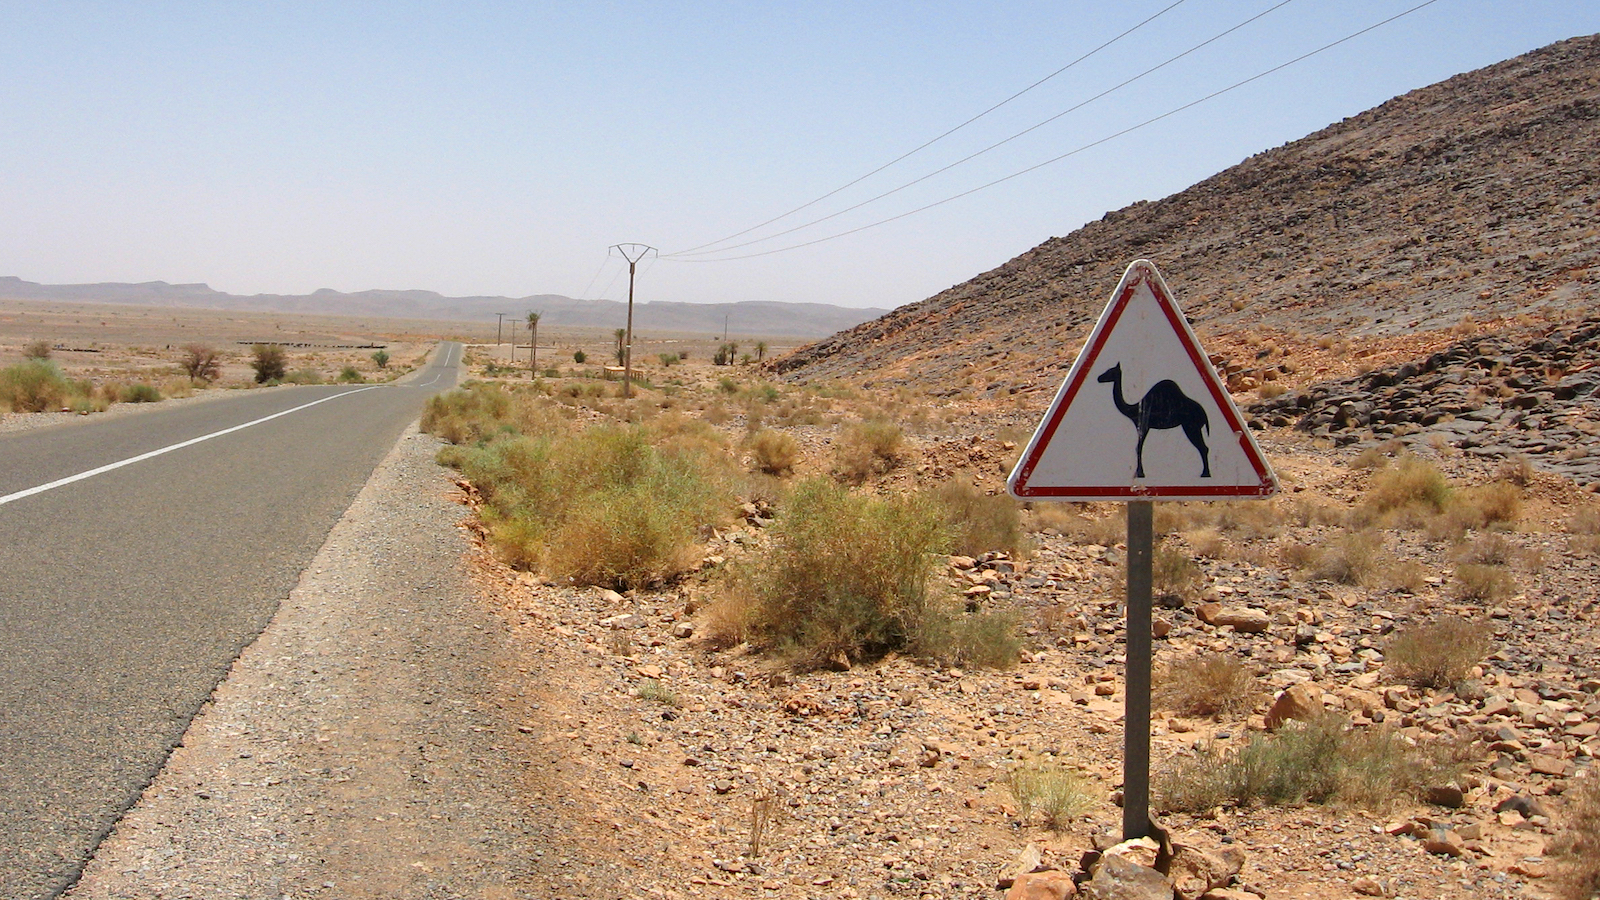 FILE - This June 2013 file photo shows a sign indicating a camel crossing on the road to Erfoud, Morocco, a town on the edge of the Sahara desert. A three-day loop from Marrakech to the dunes of Erg Chebbi by camel and air-conditioned SUV offers a look at one of Africa's most mythic and historic trading routes - the road to Timbuktu. (AP Photo/Giovanna Dell'Orto, File)